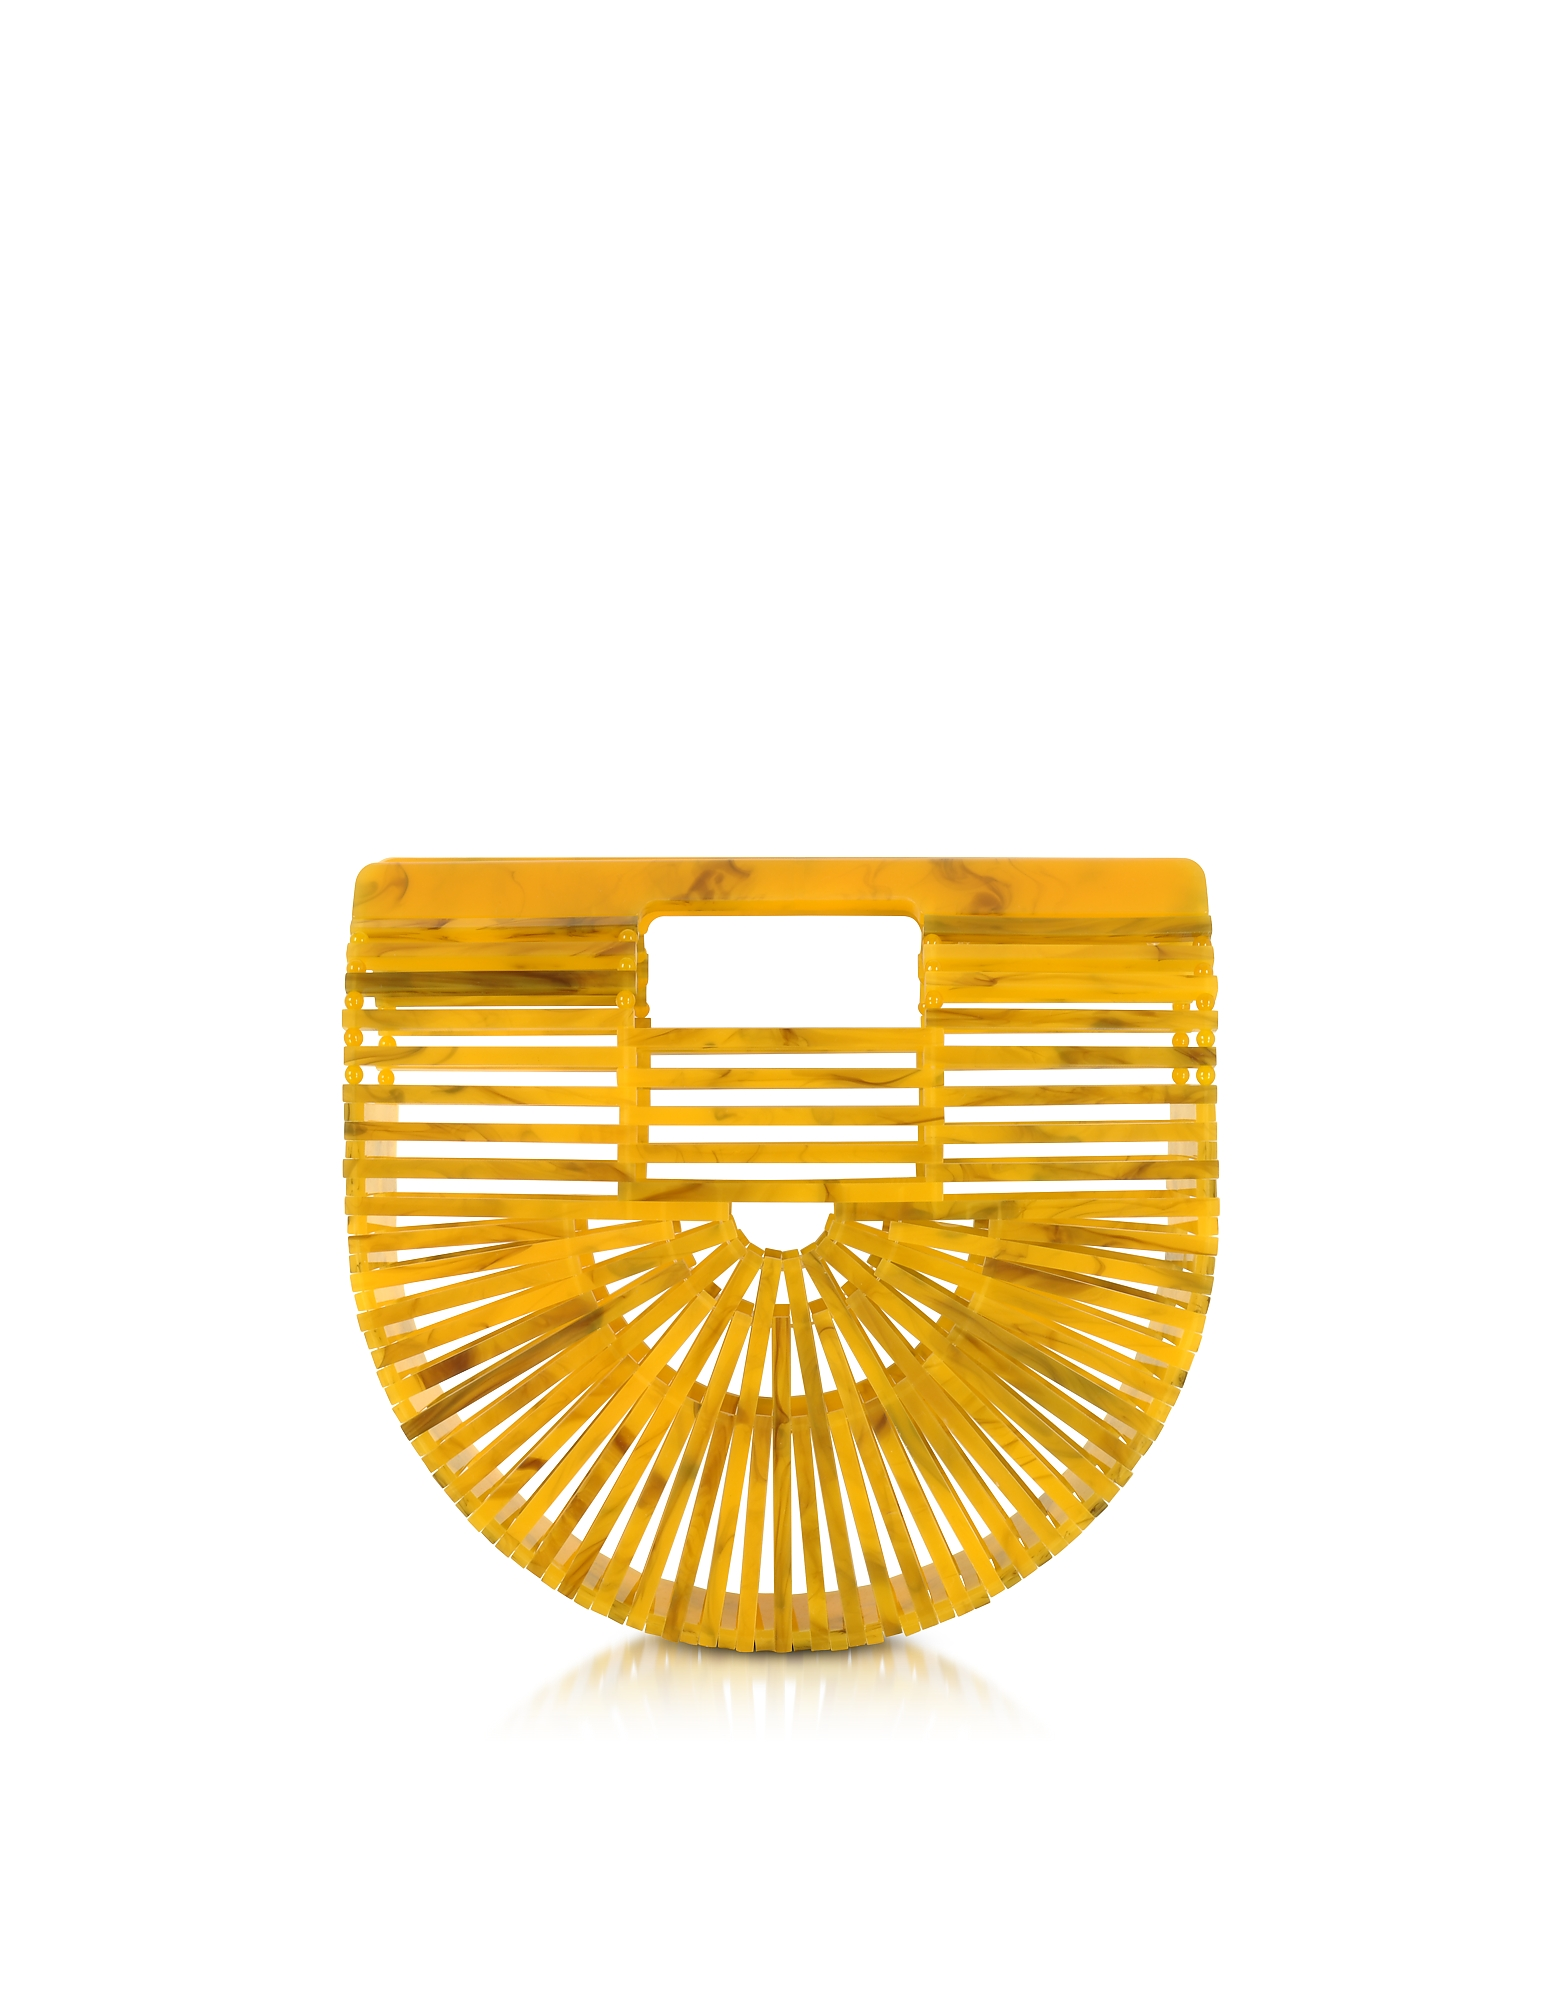 Cult Gaia Handbags, Marigold Acrylic Mini Ark Bag